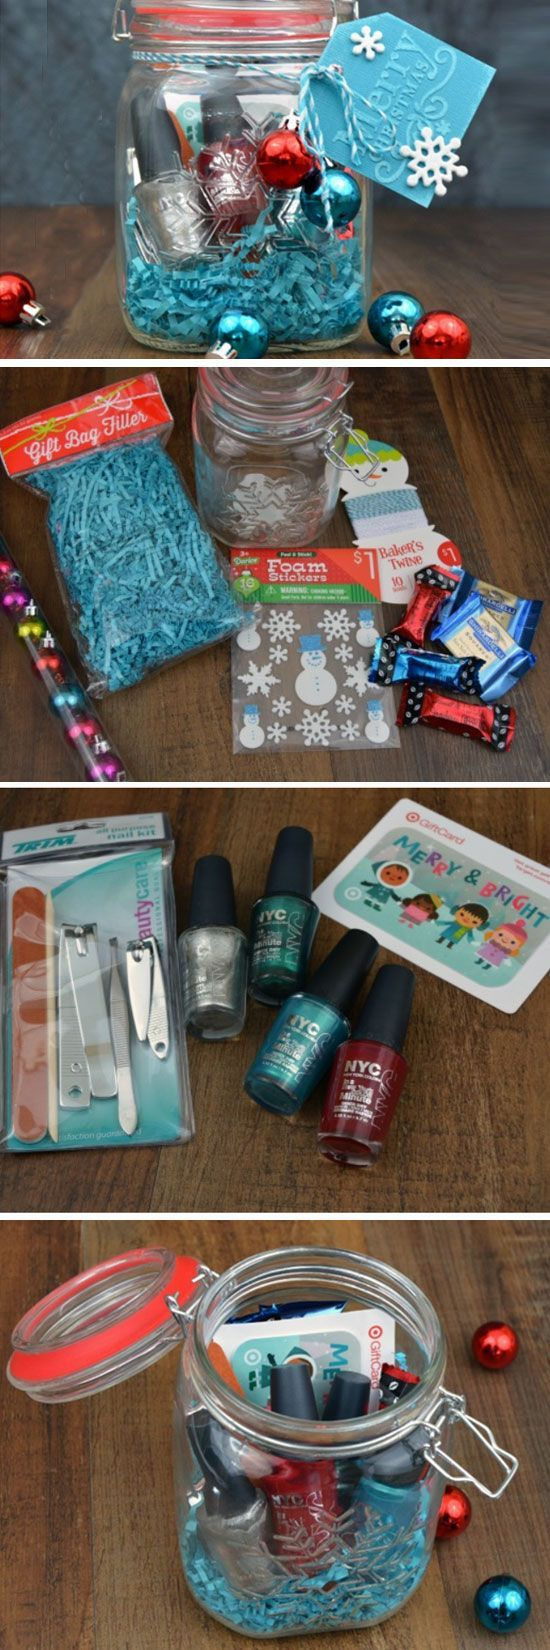 Hidden Gift Card Treasure | DIY Christmas Baskets for Teens: